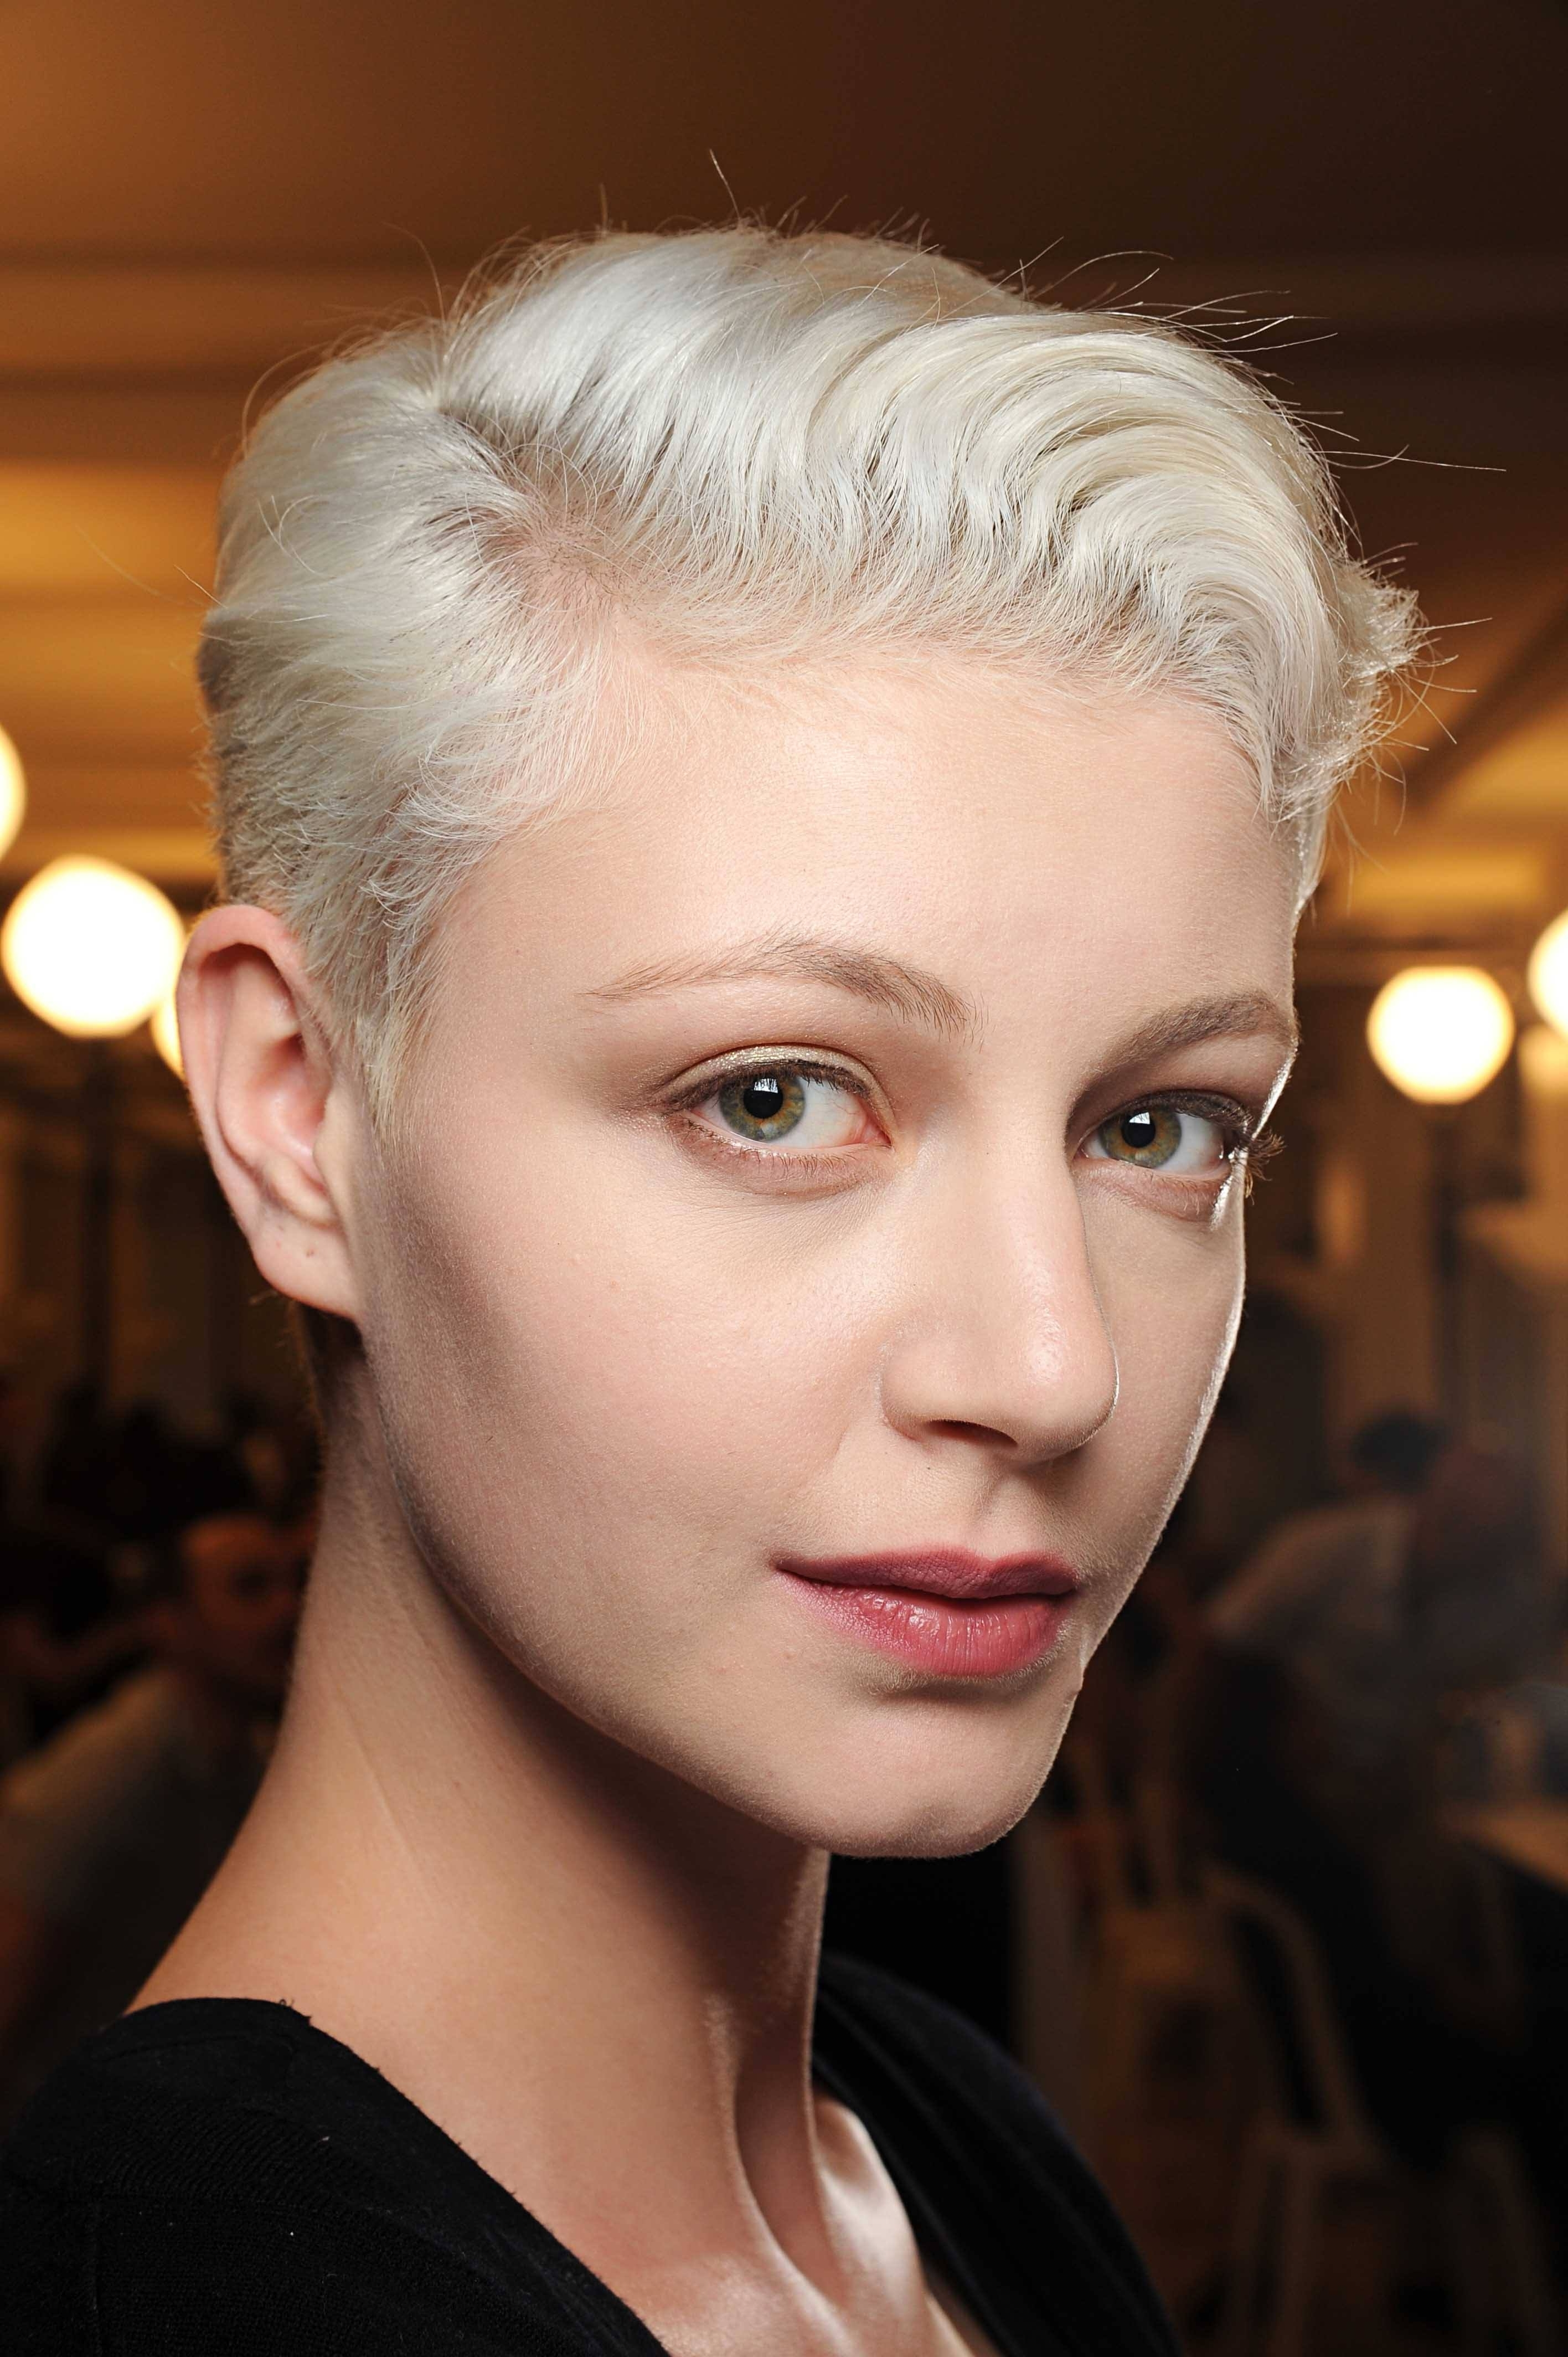 White Bleach Blonde Hair Short Pixie Armani Prive Aw Indigital Throughout Most Recently Bleach Blonde Pixie Haircuts (View 7 of 15)